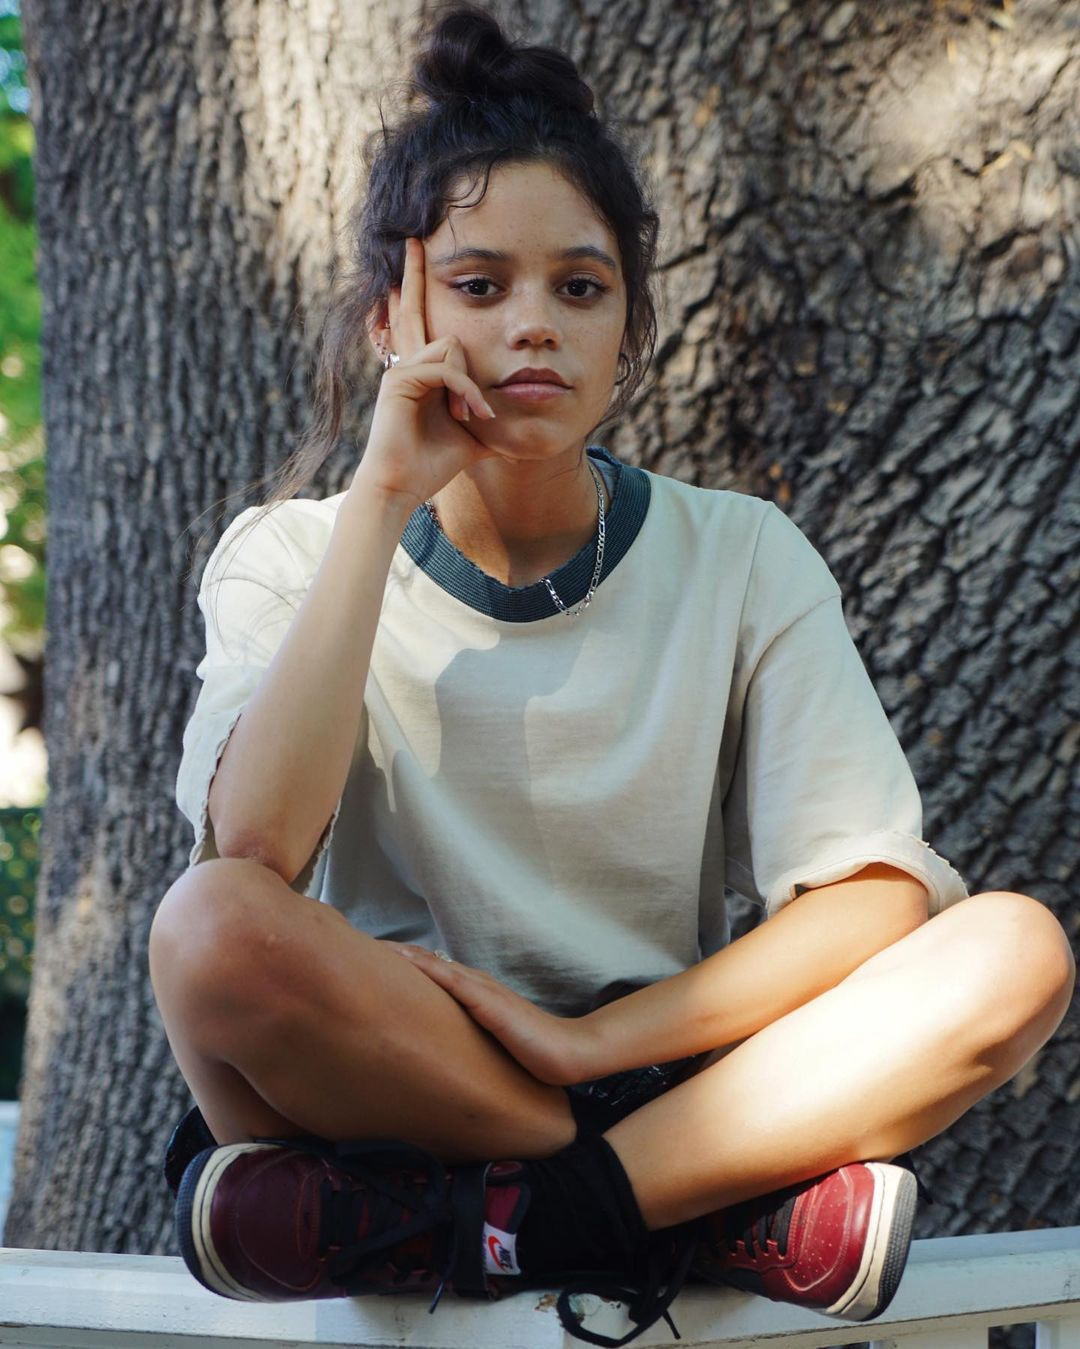 Jenna Ortega as Vada in The Fallout, wearing a white shirt and red trainers